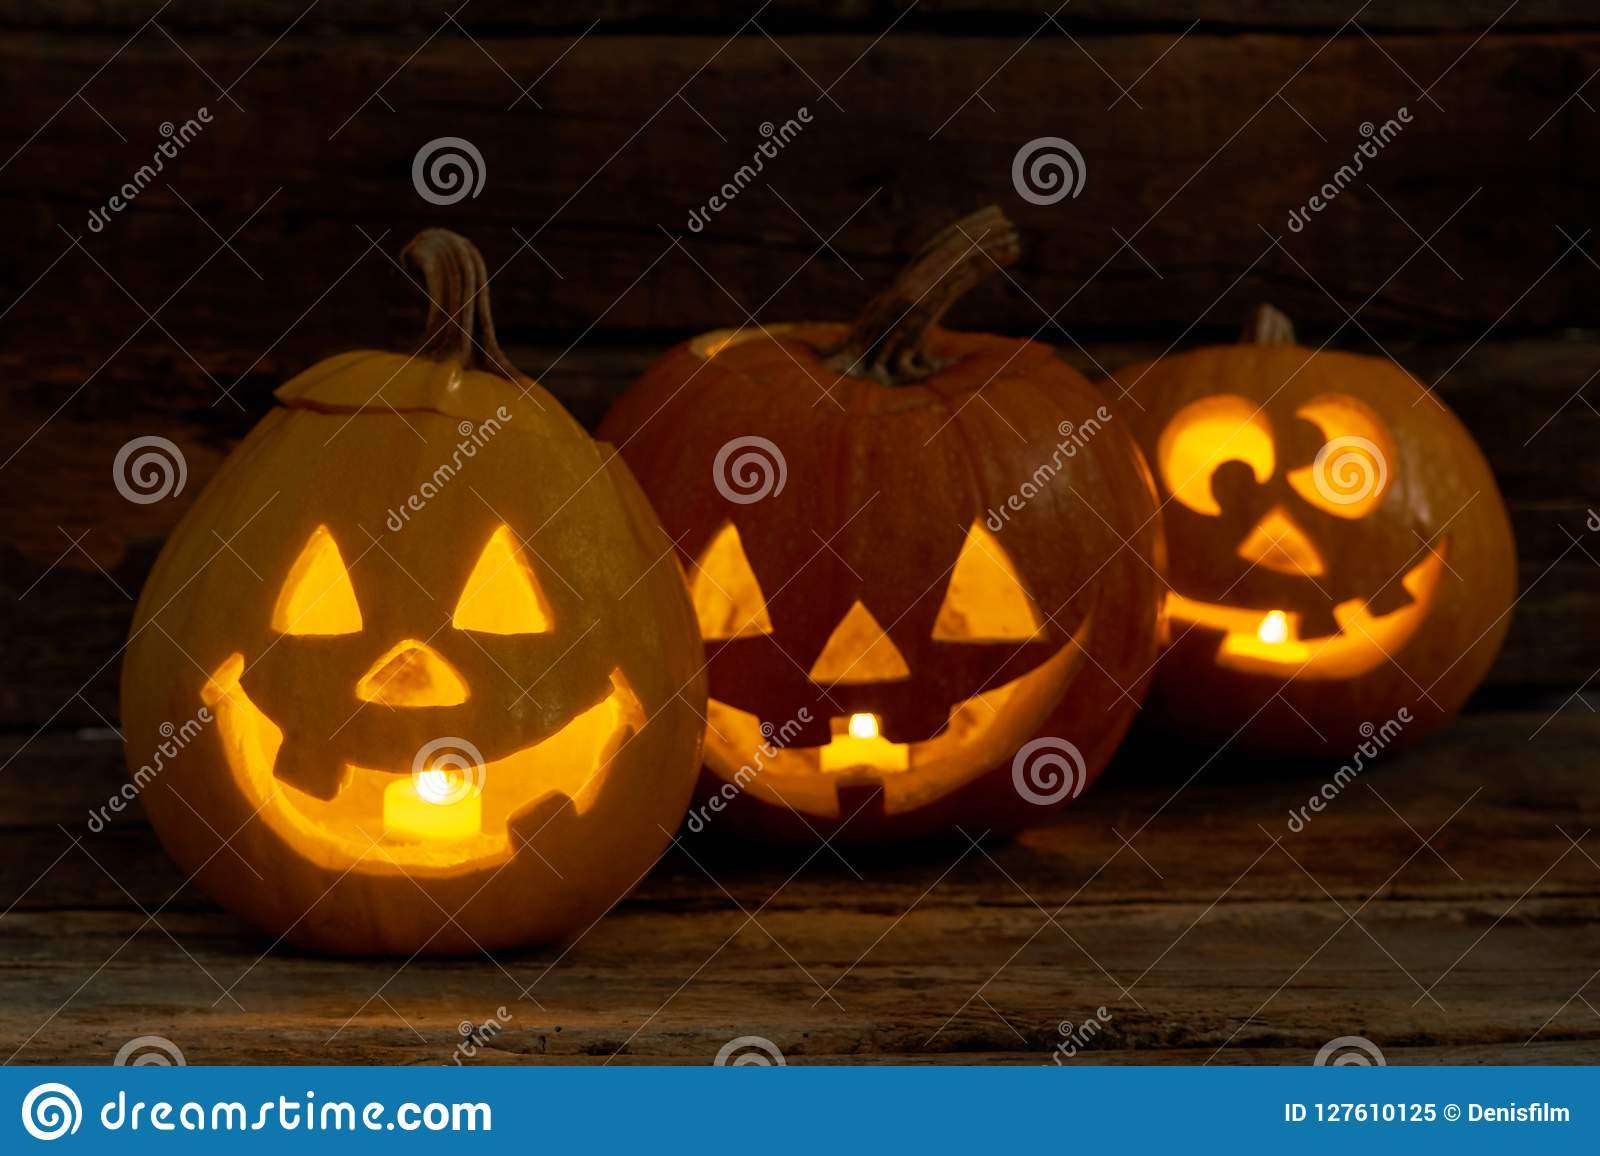 Funny Halloween Pumpkins With Burning Candles Stock Image Image Of Holiday Funny 127610125